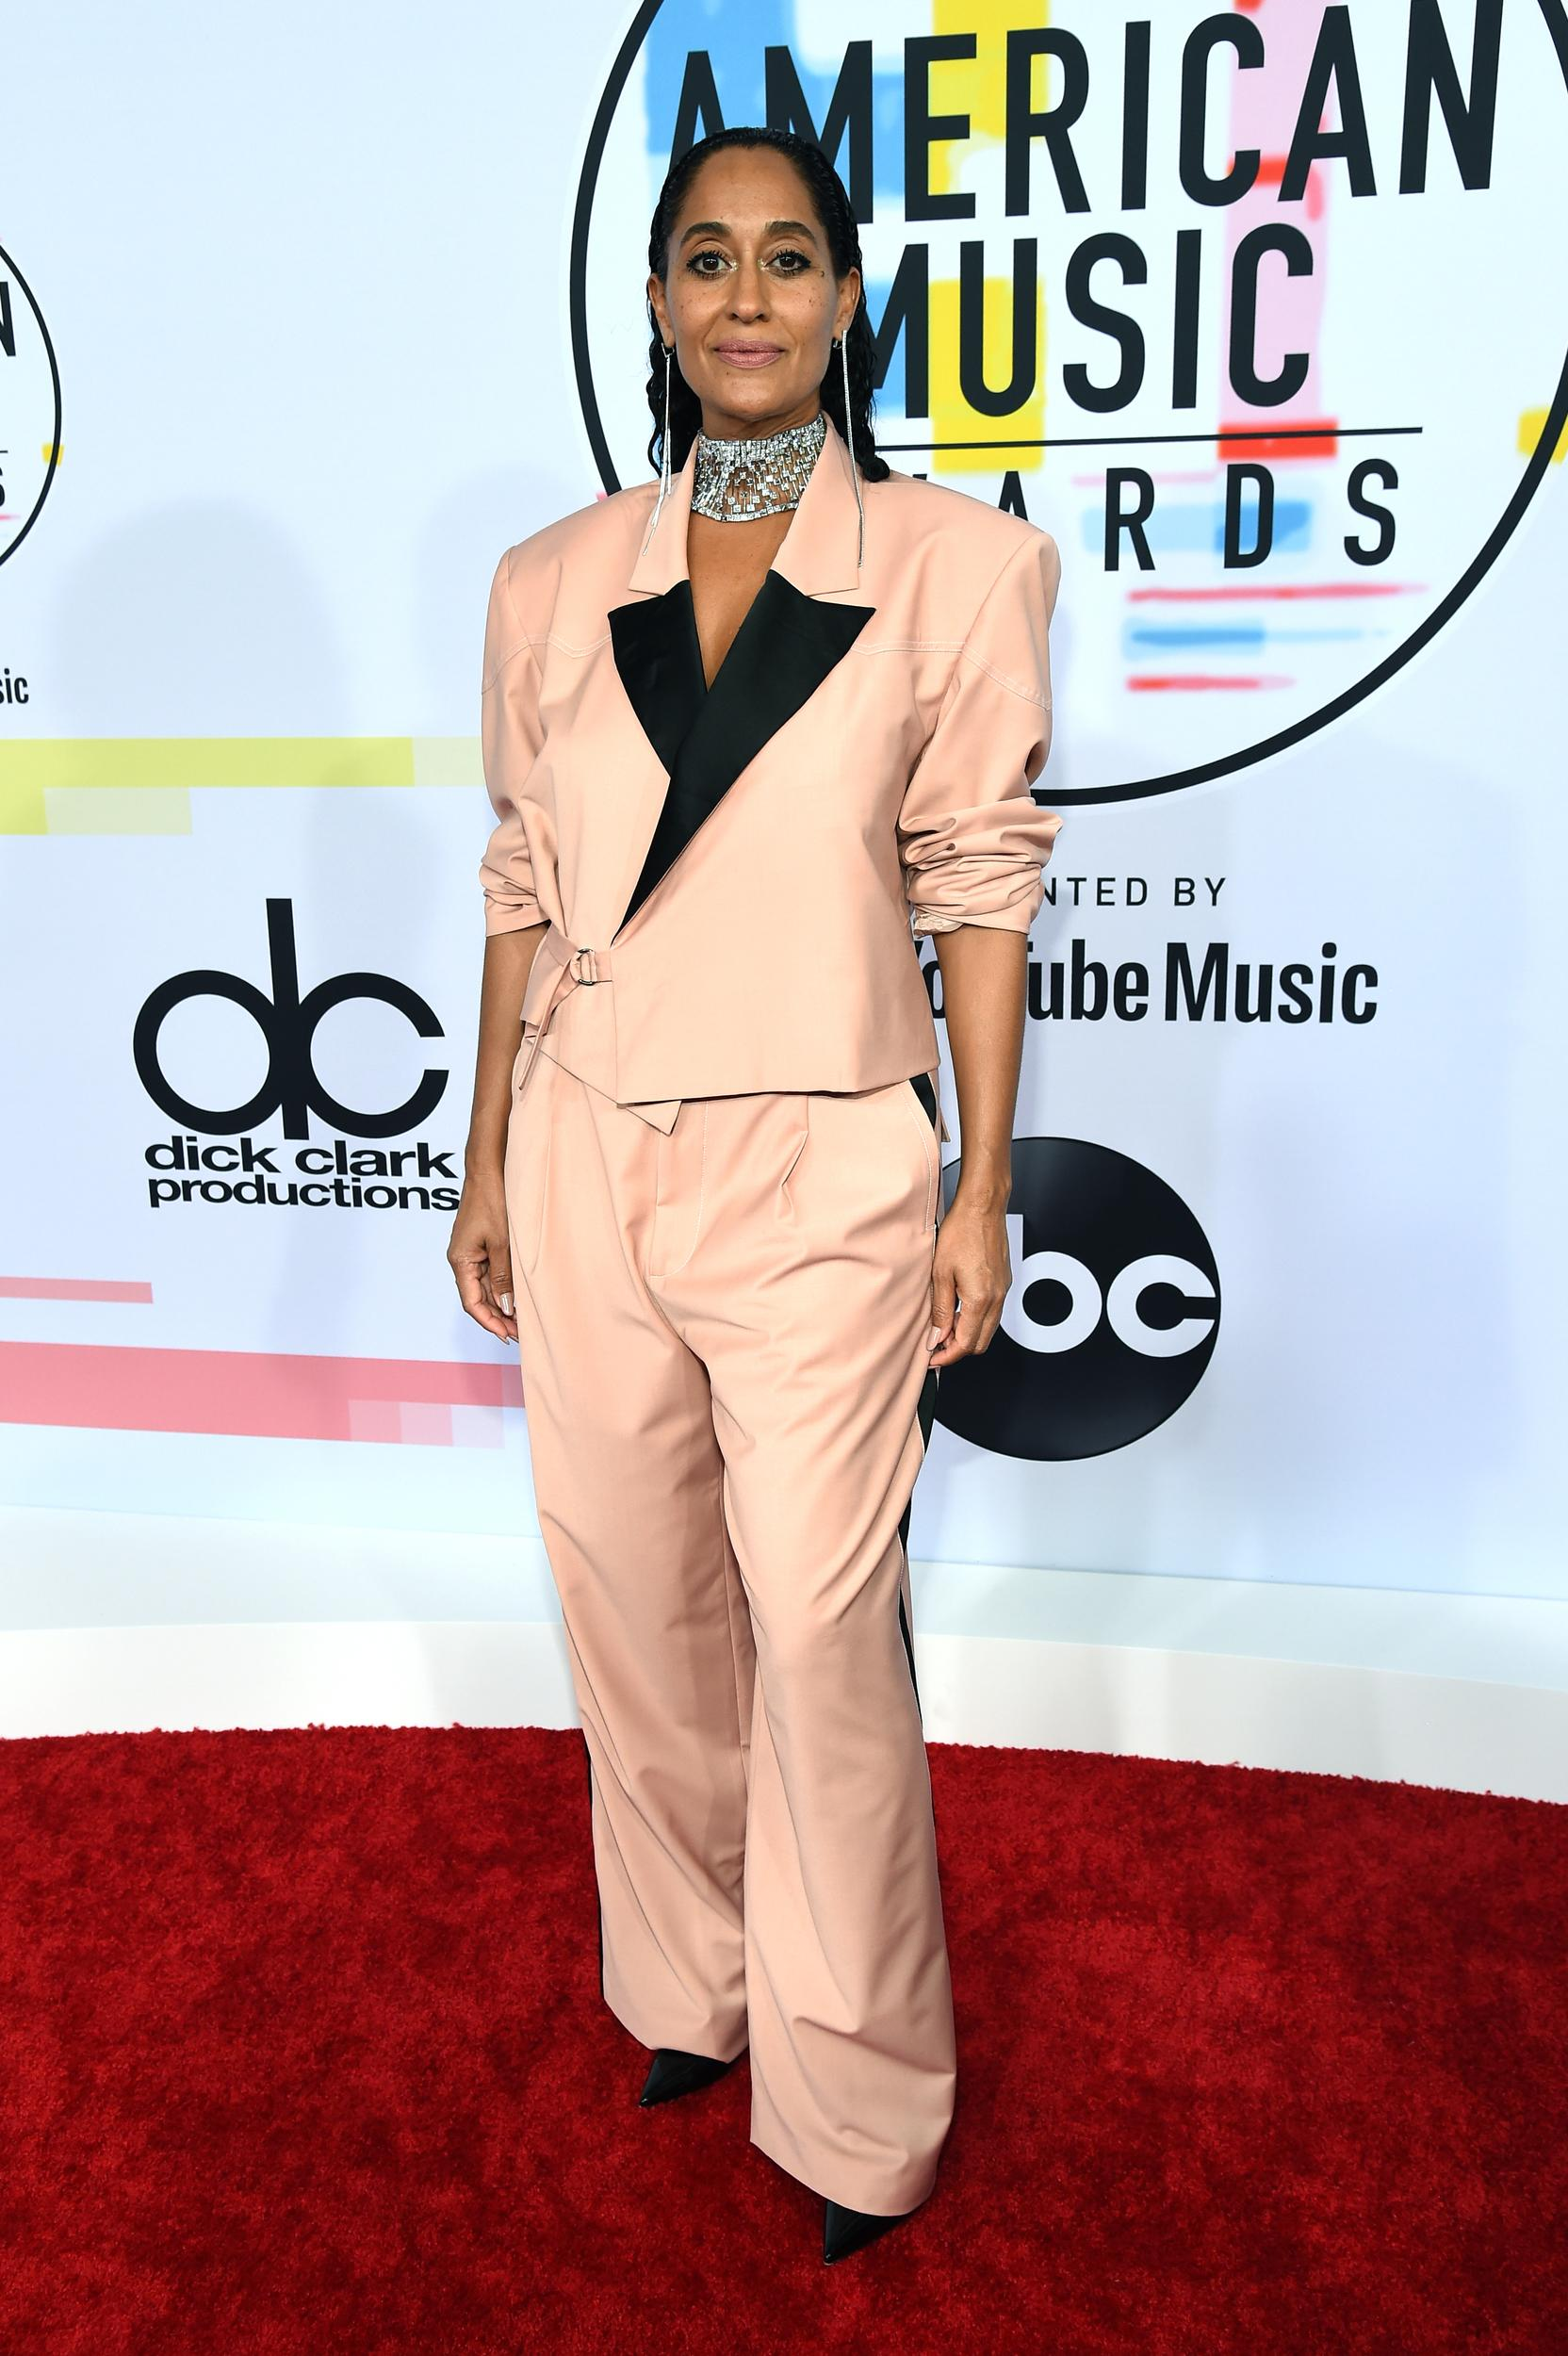 LOS ANGELES, CA - OCTOBER 09: Host Tracee Ellis Ross attends the 2018 American Music Awards at Microsoft Theater on October 9, 2018 in Los Angeles, California. (Photo by Kevin Mazur/Getty Images For dcp)